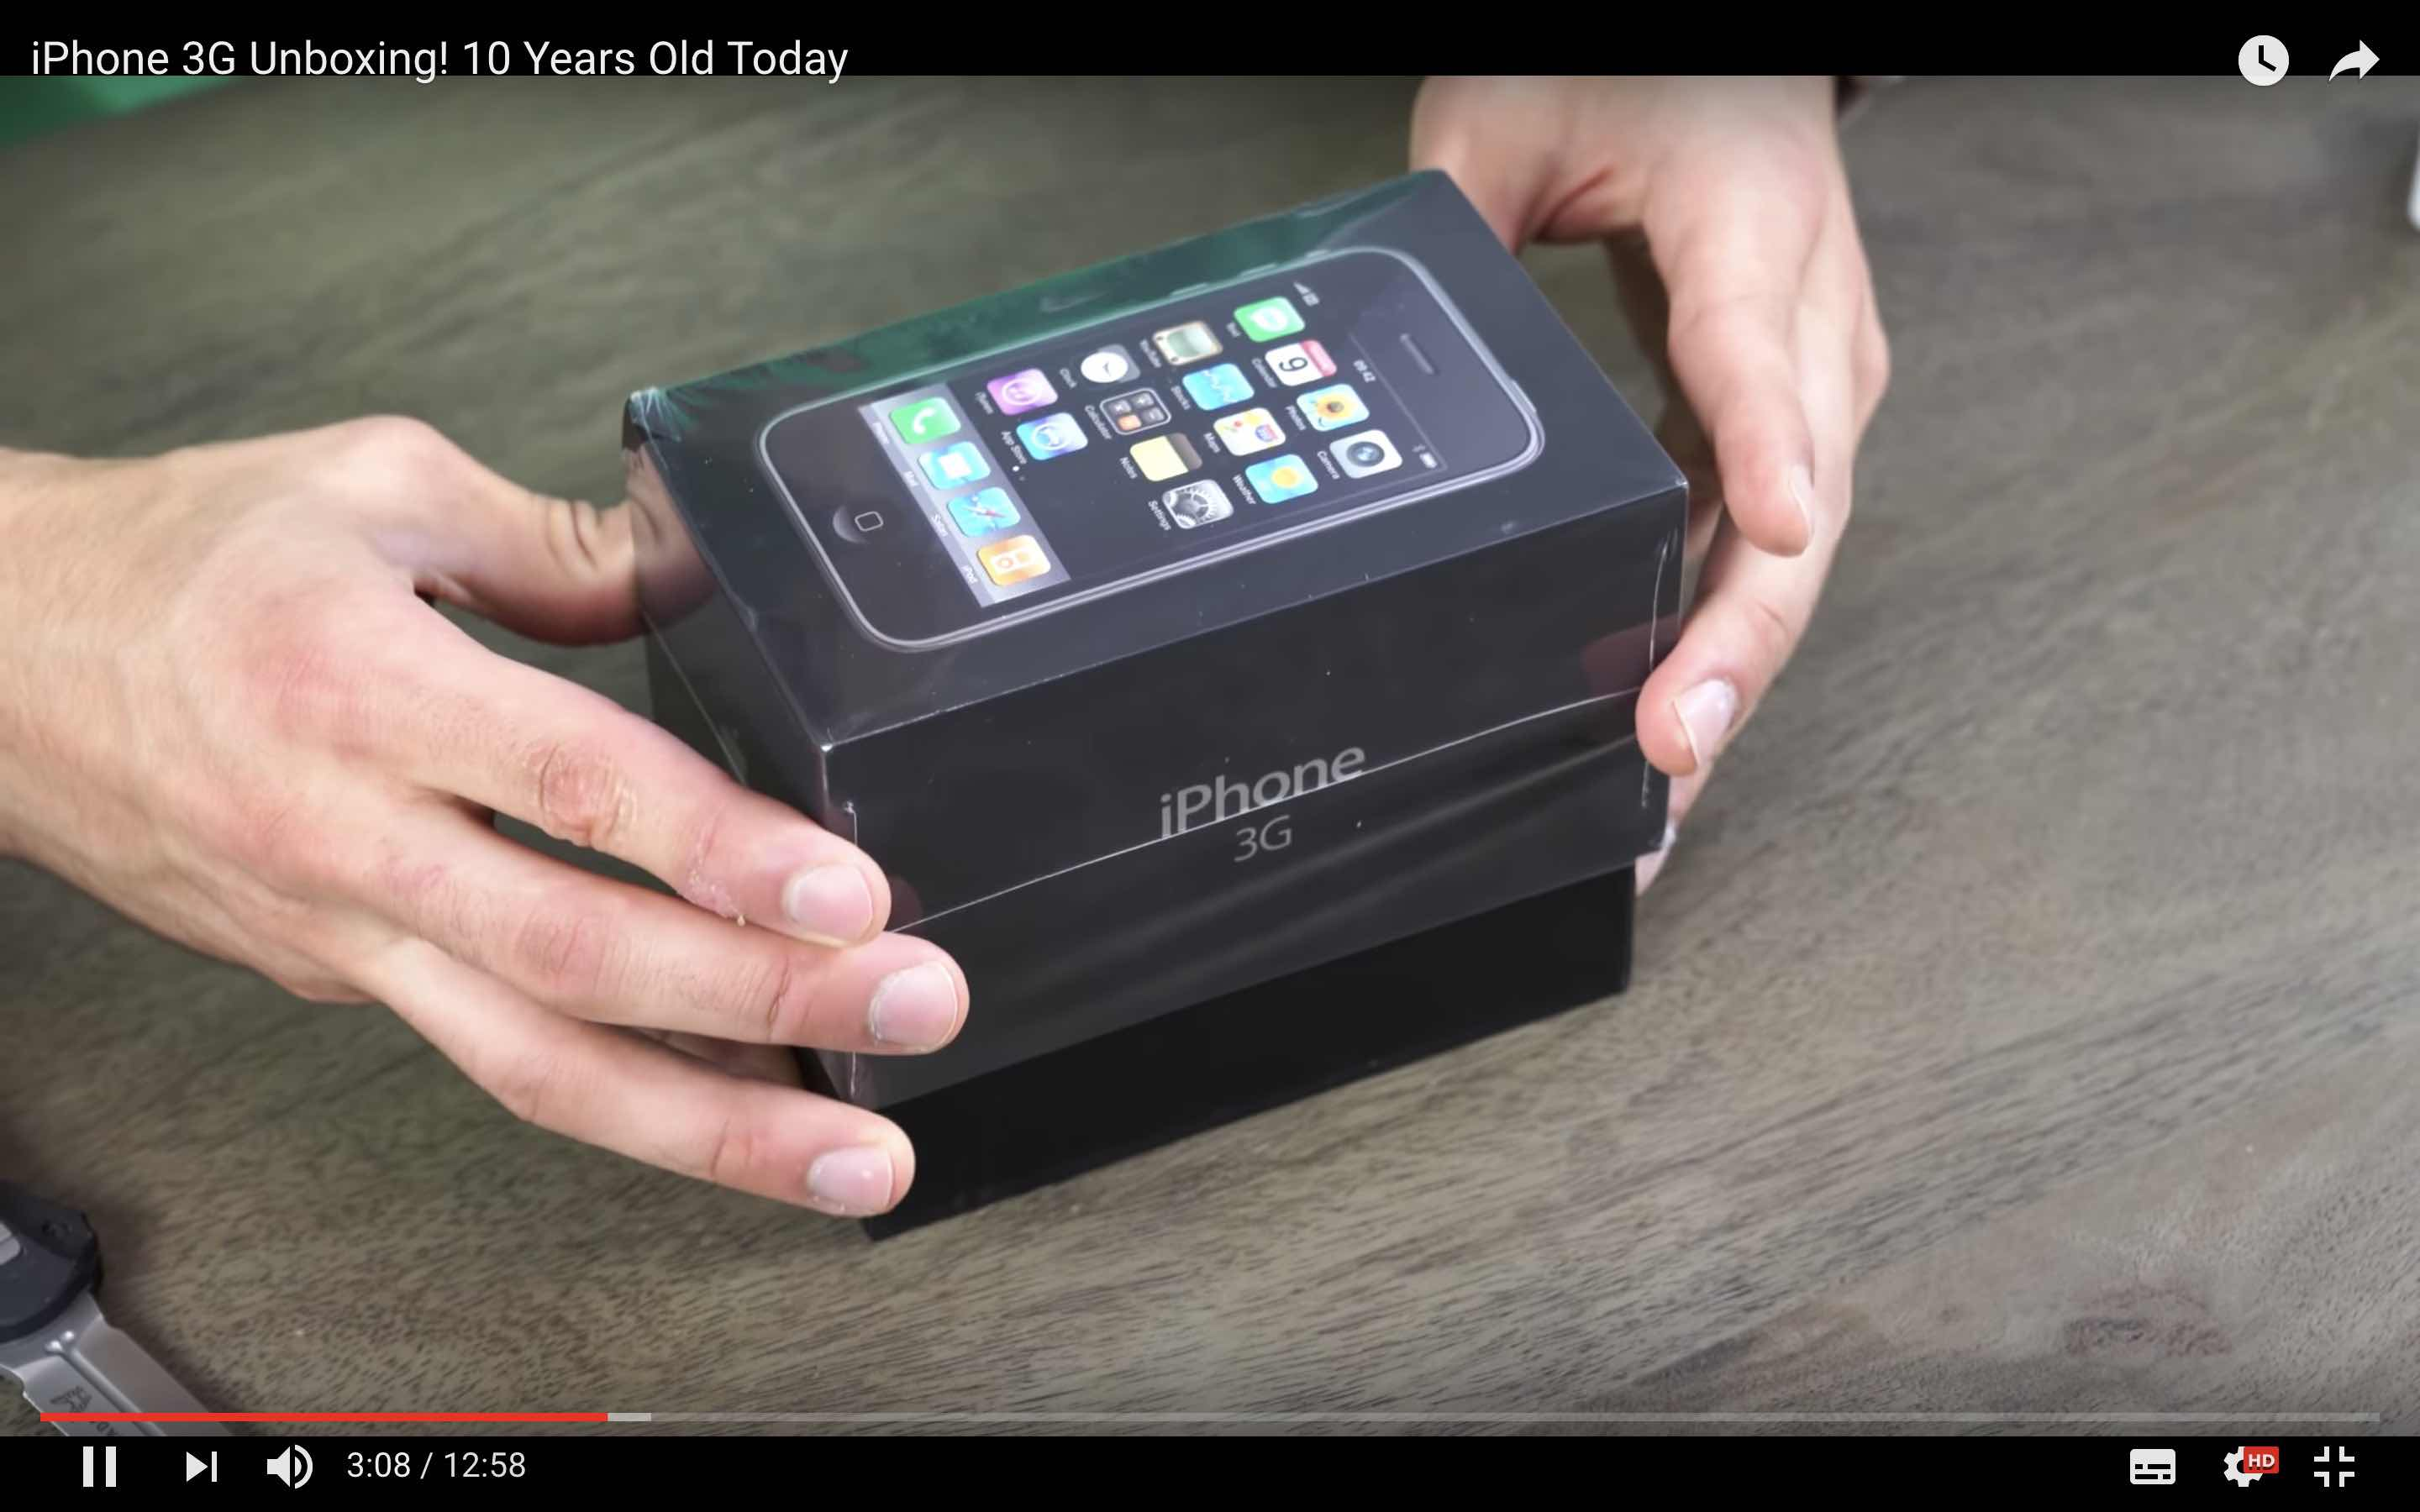 iPhone3G unboxing 2